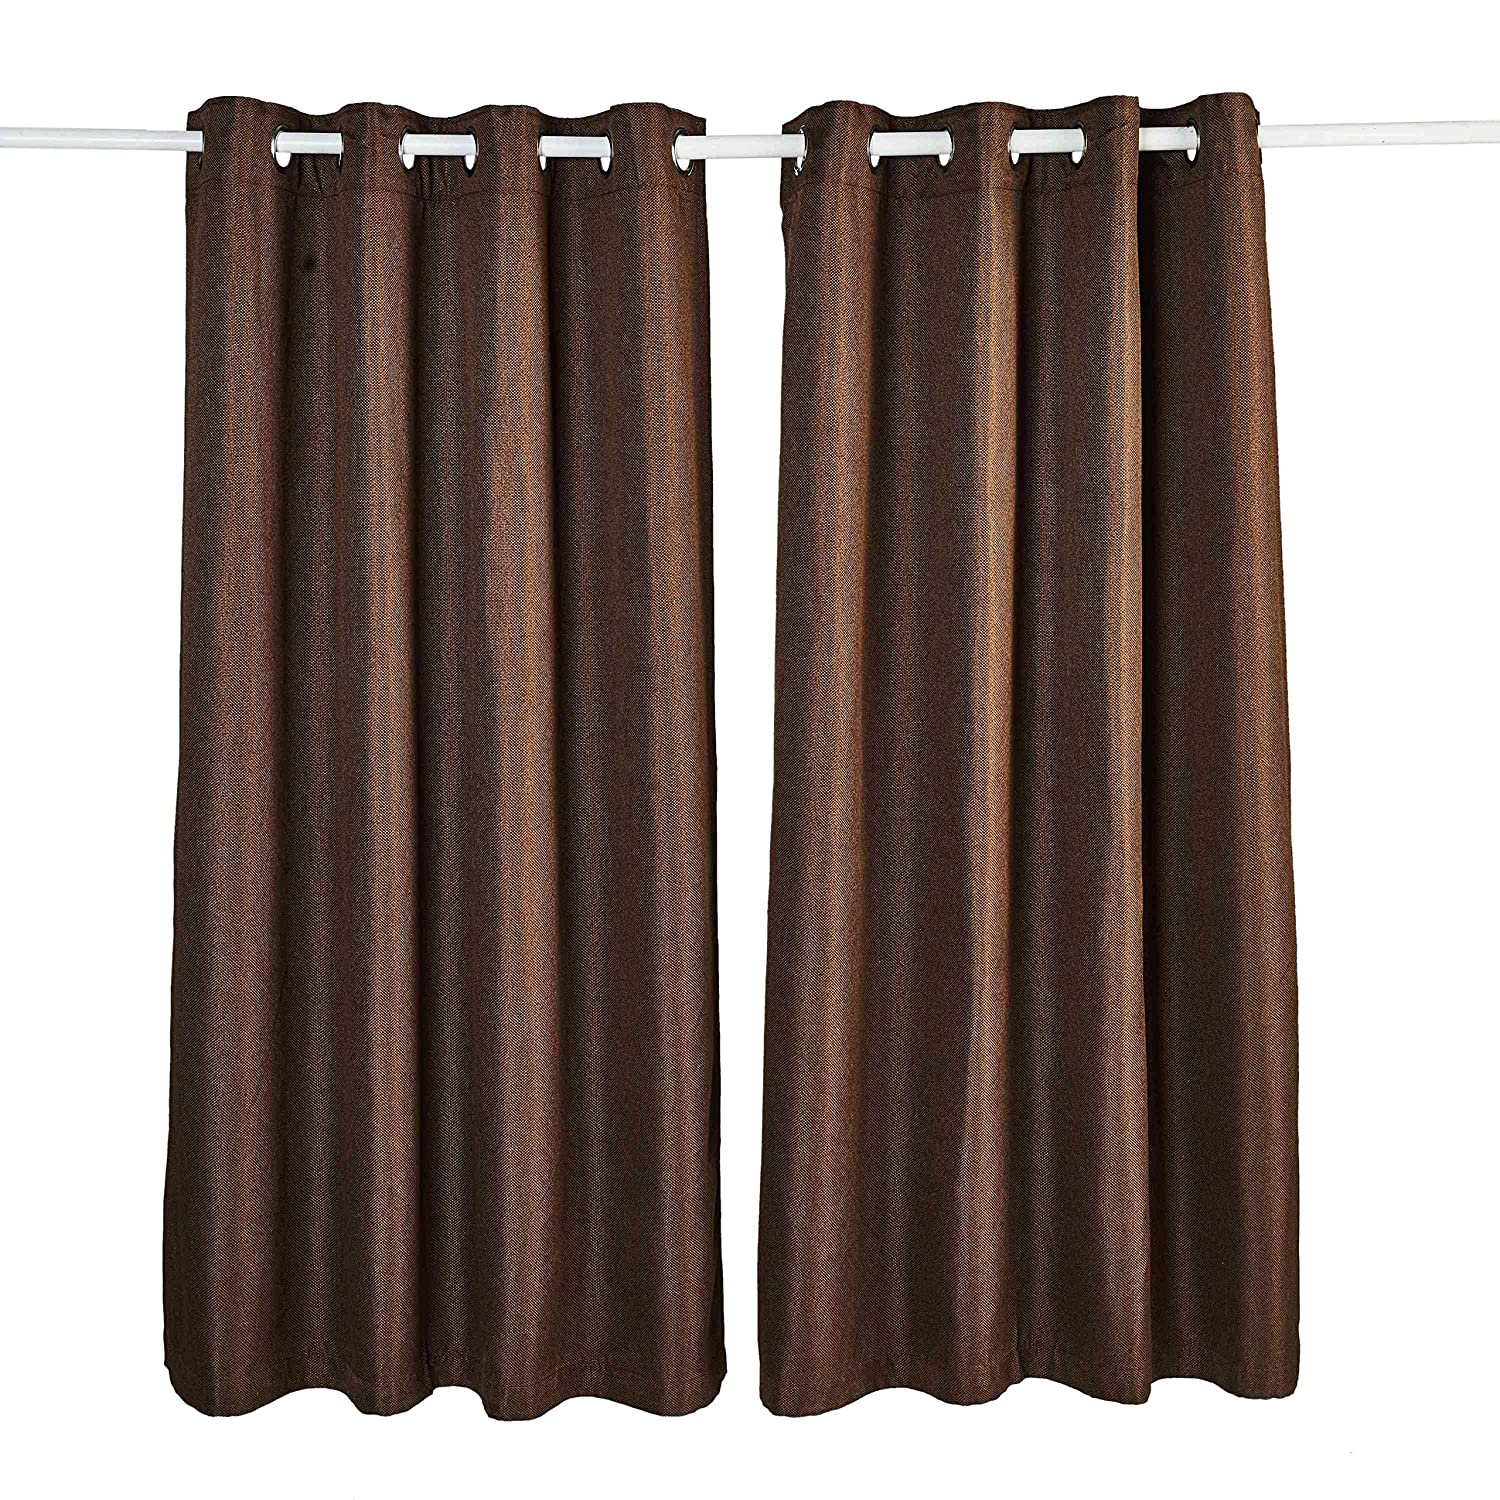 Ammybeddings Window Curtains Super Soft Thermal Insulated Blackout Eyelet Dark Coffee Window Treatment Curtains for Bedroom/Living Room 2pcs (52 x 64)